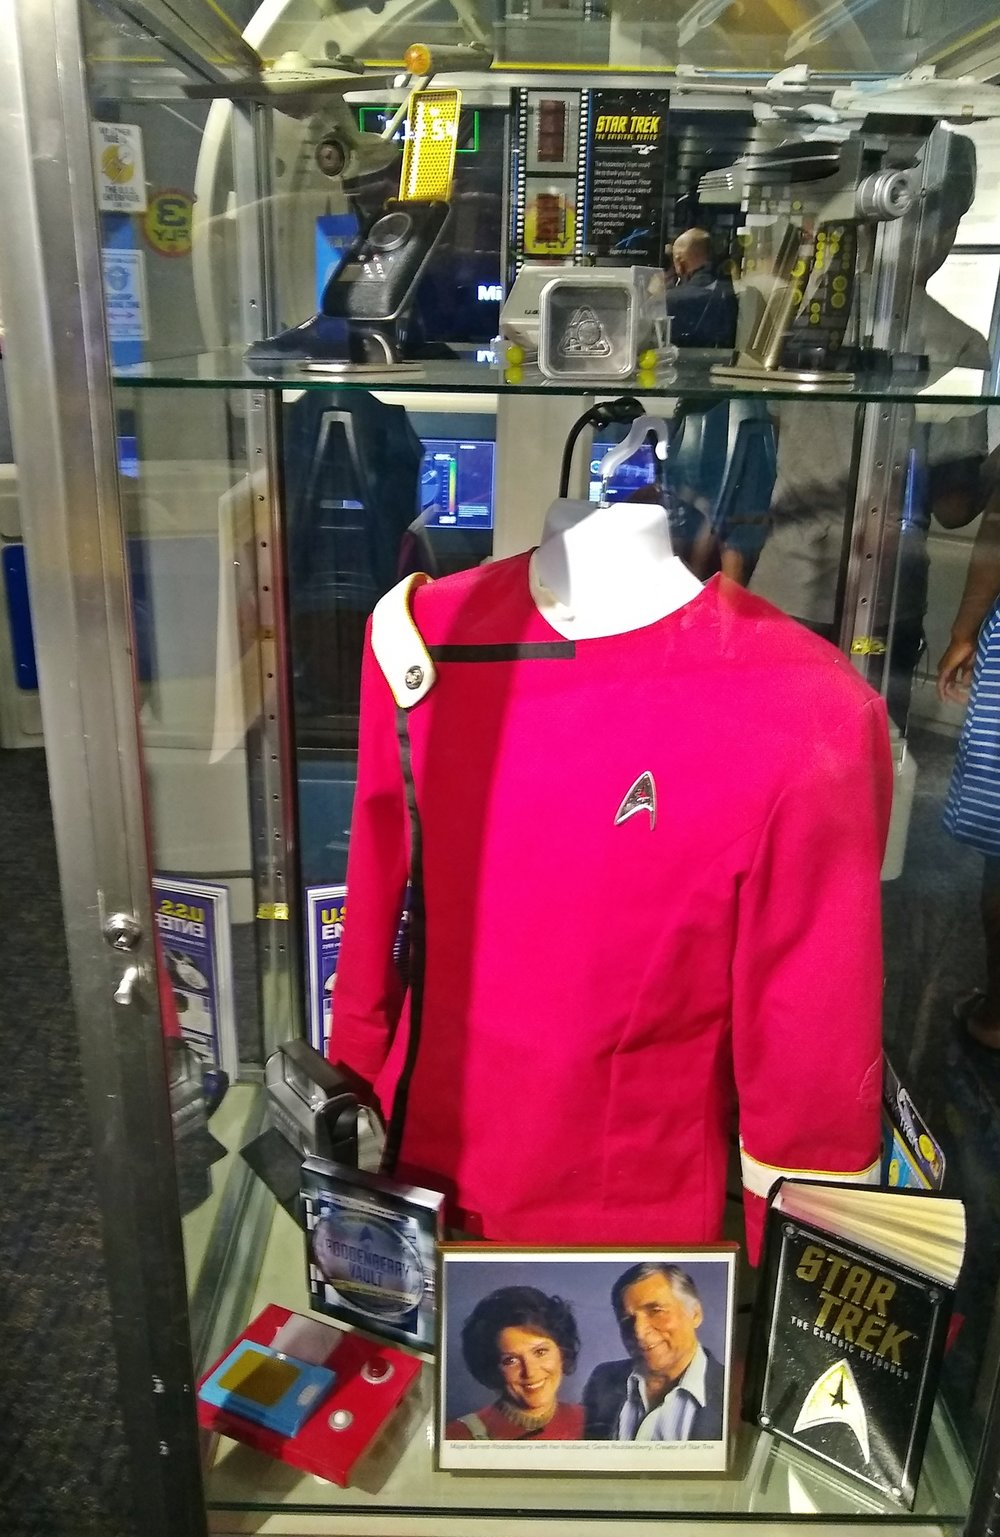 Actual Star Treck TV Series props